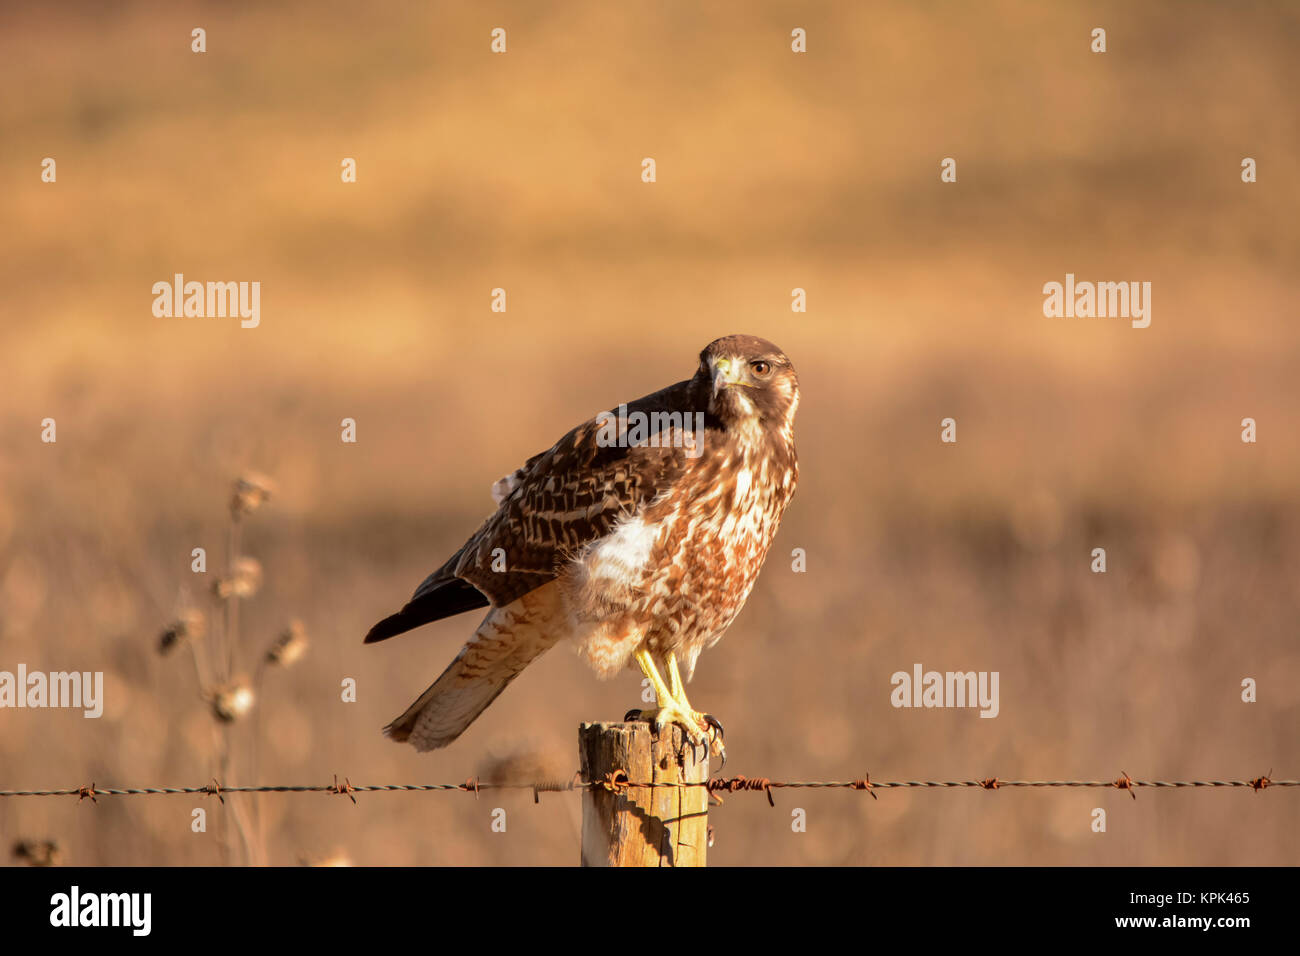 A hawk ( Accipitridae) is looking at the camera, ready to fly off from a fence post in warm sunlight; Potrerillos, - Stock Image